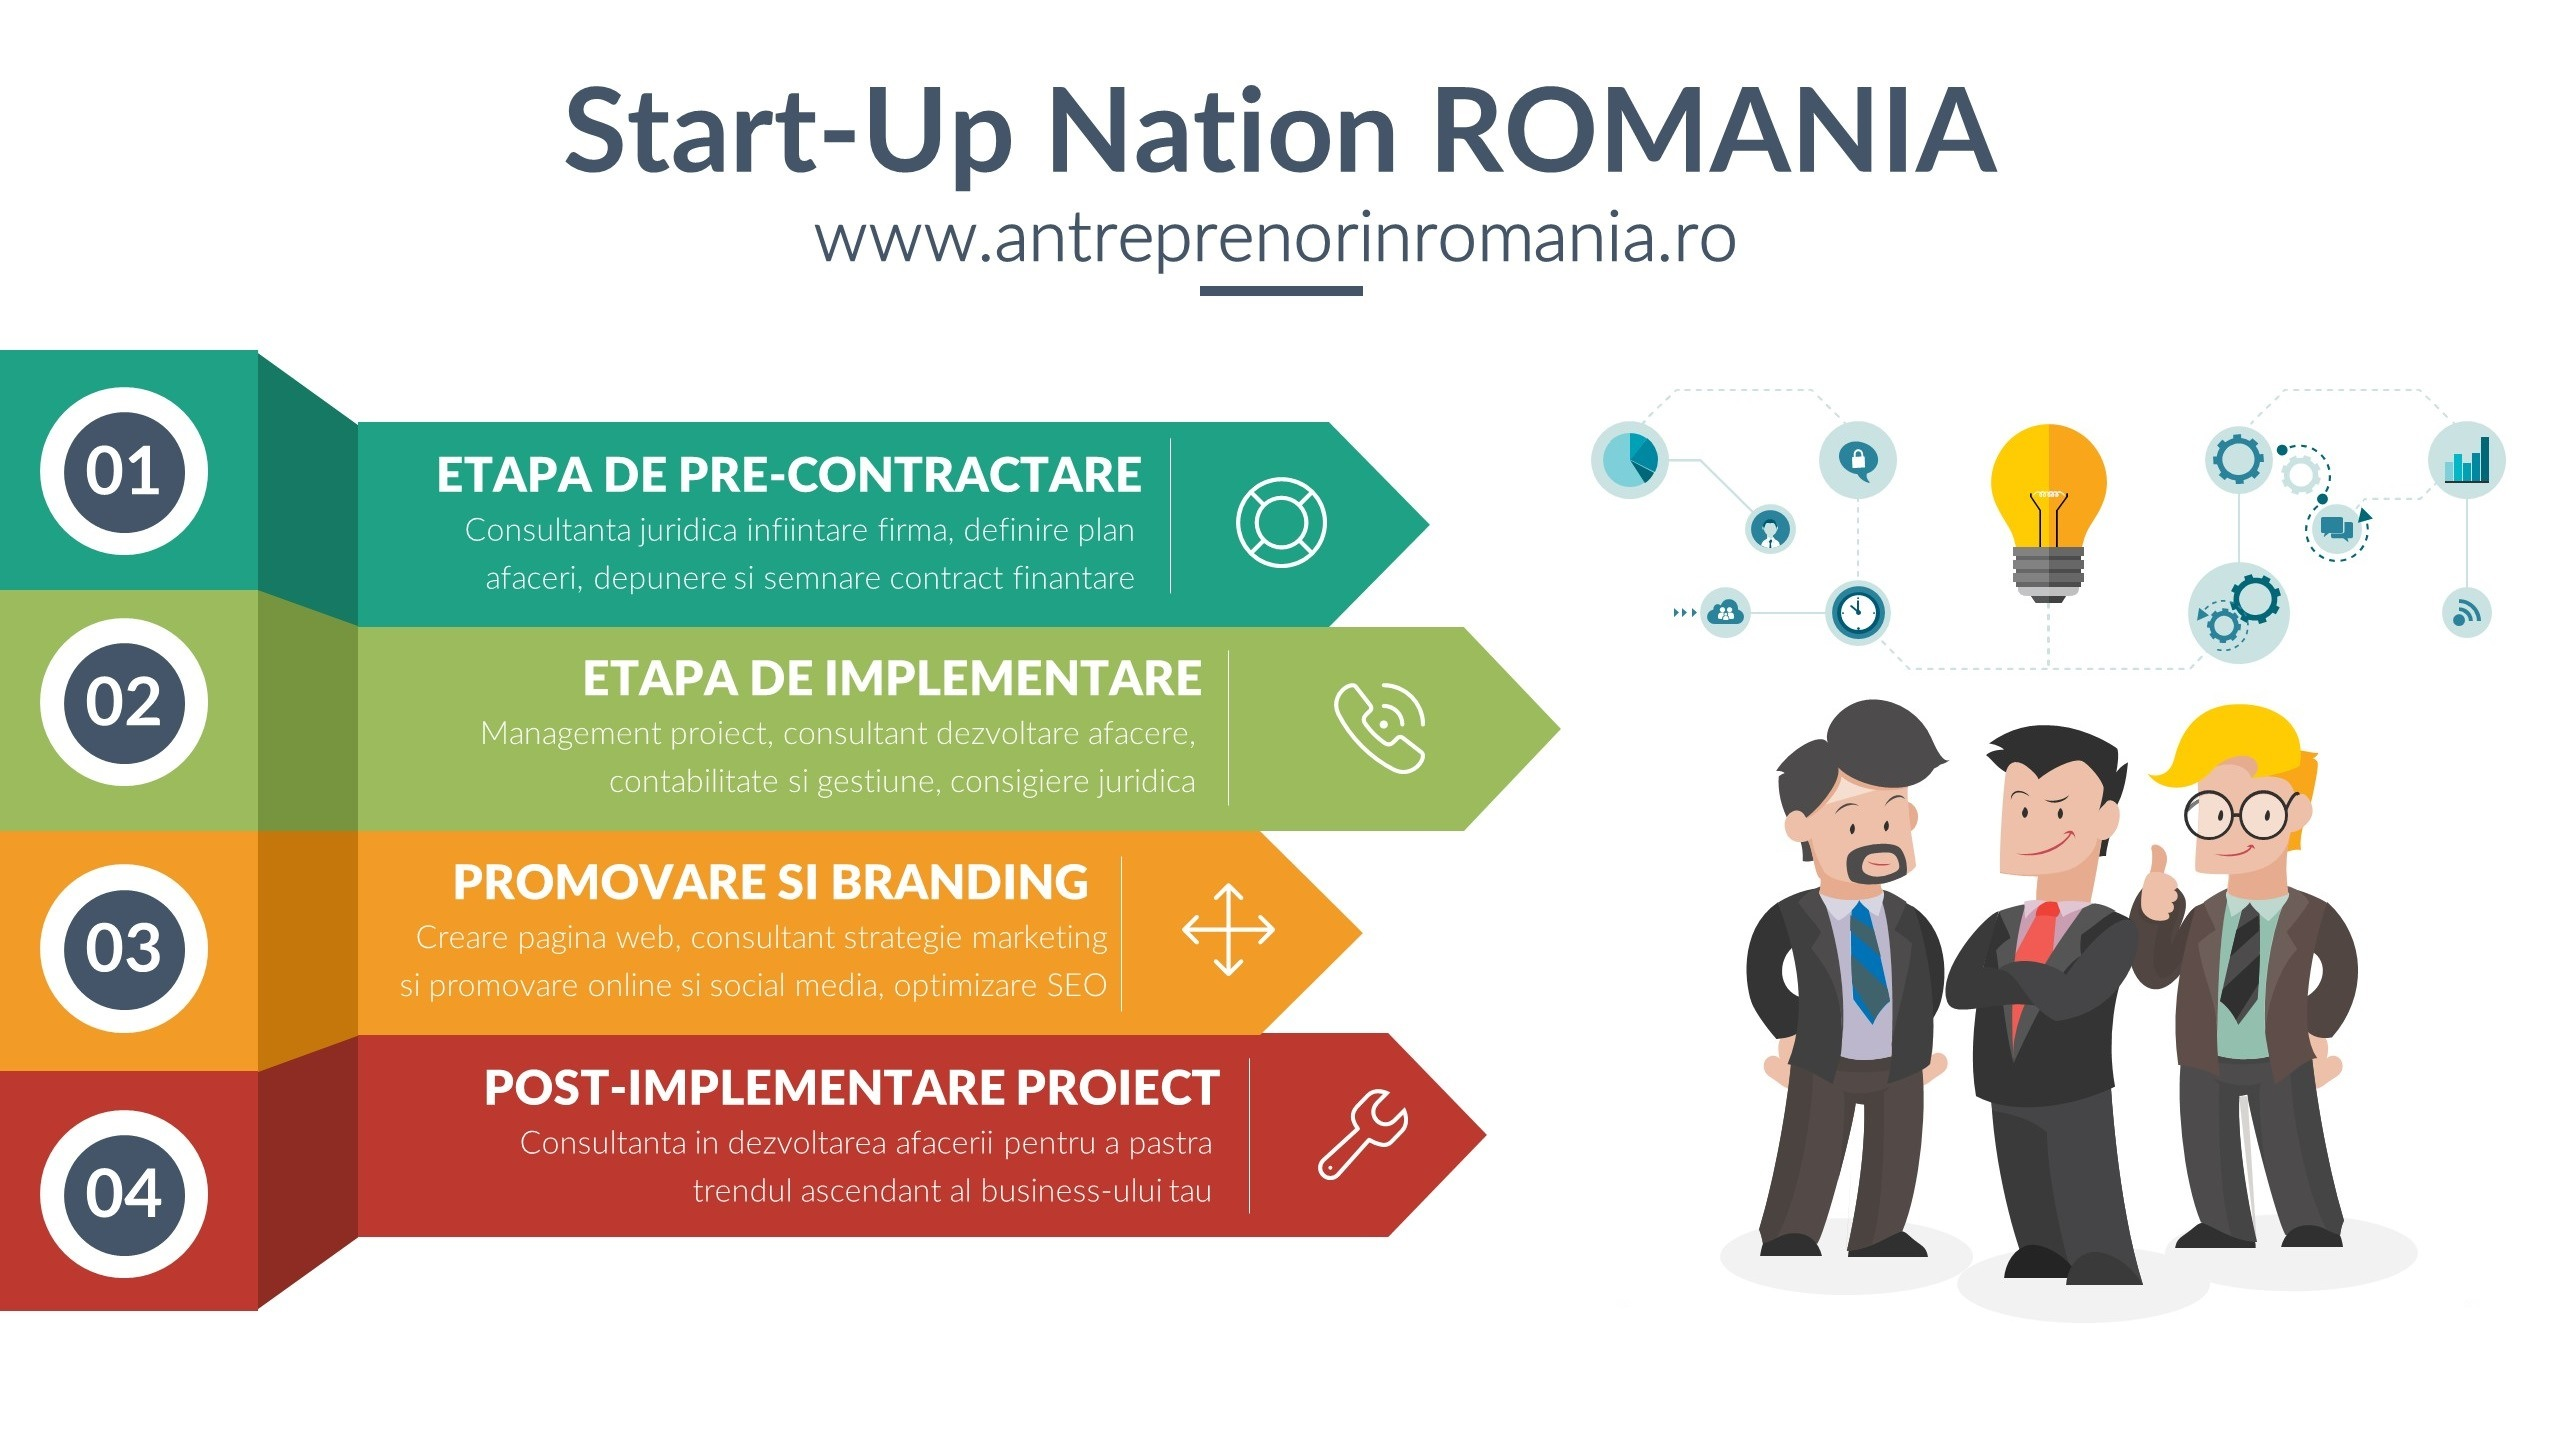 Consultanta program startup nation romania